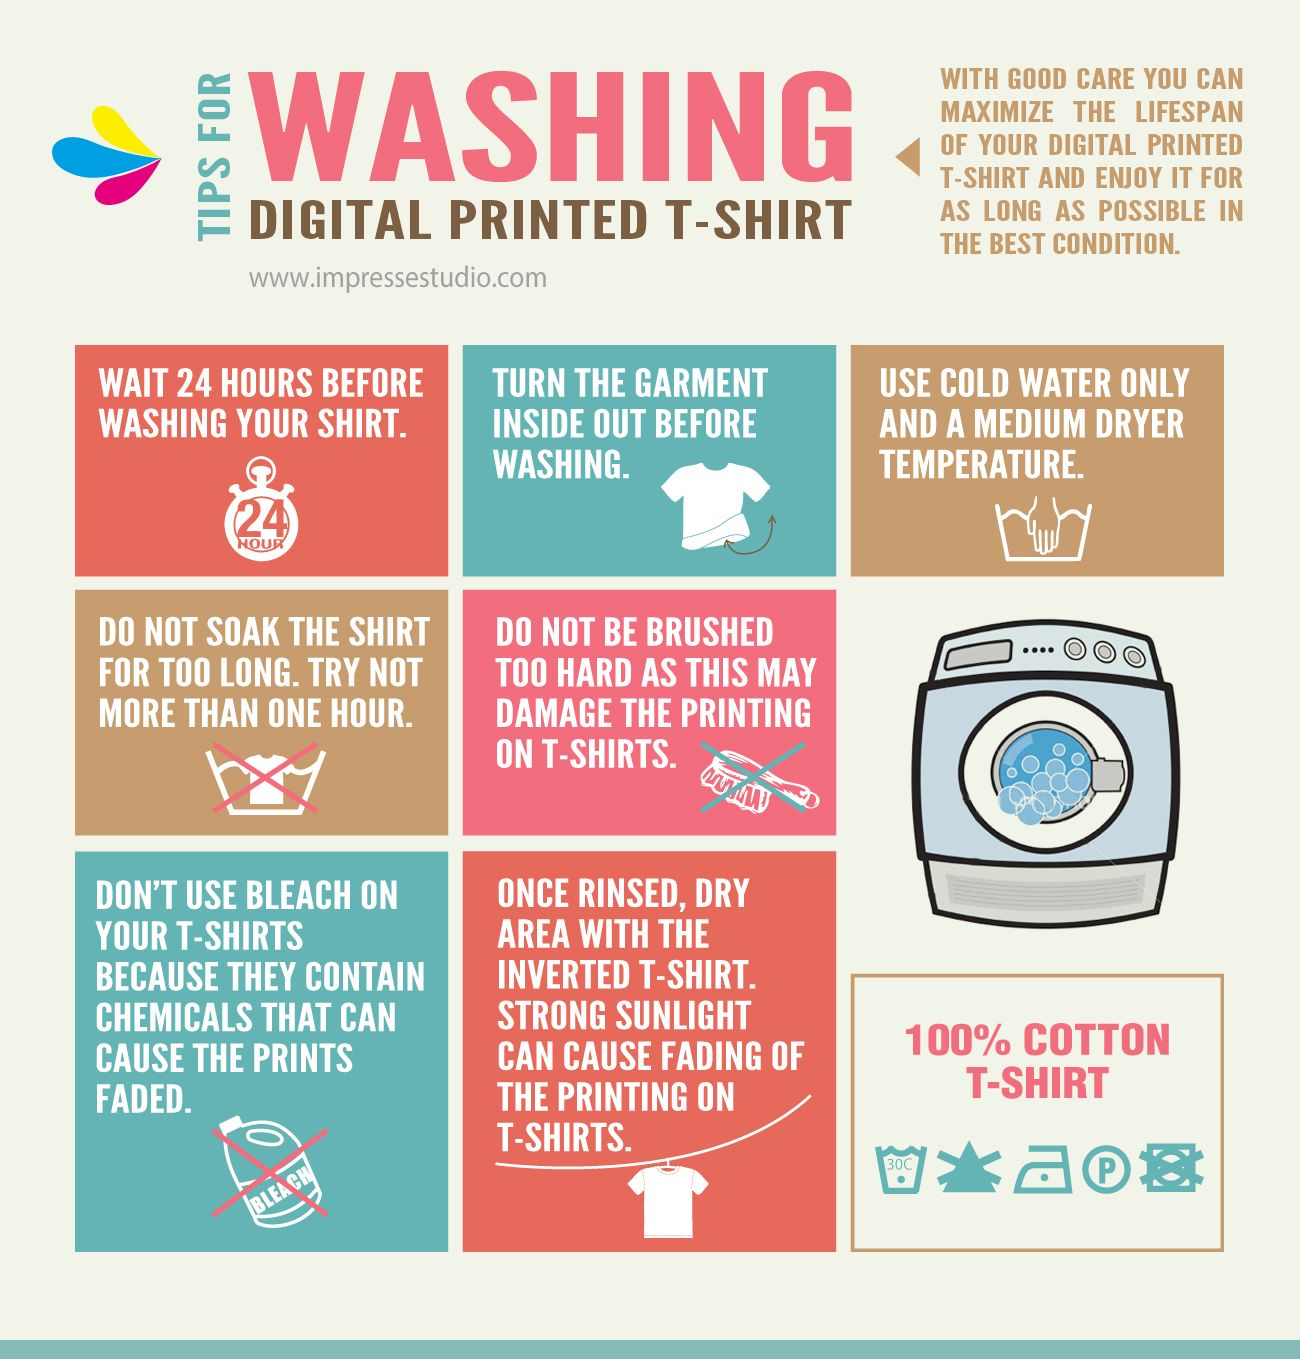 TIPS FOR WASHING YOUR DIGITAL PRINTED TSHIRT. with good